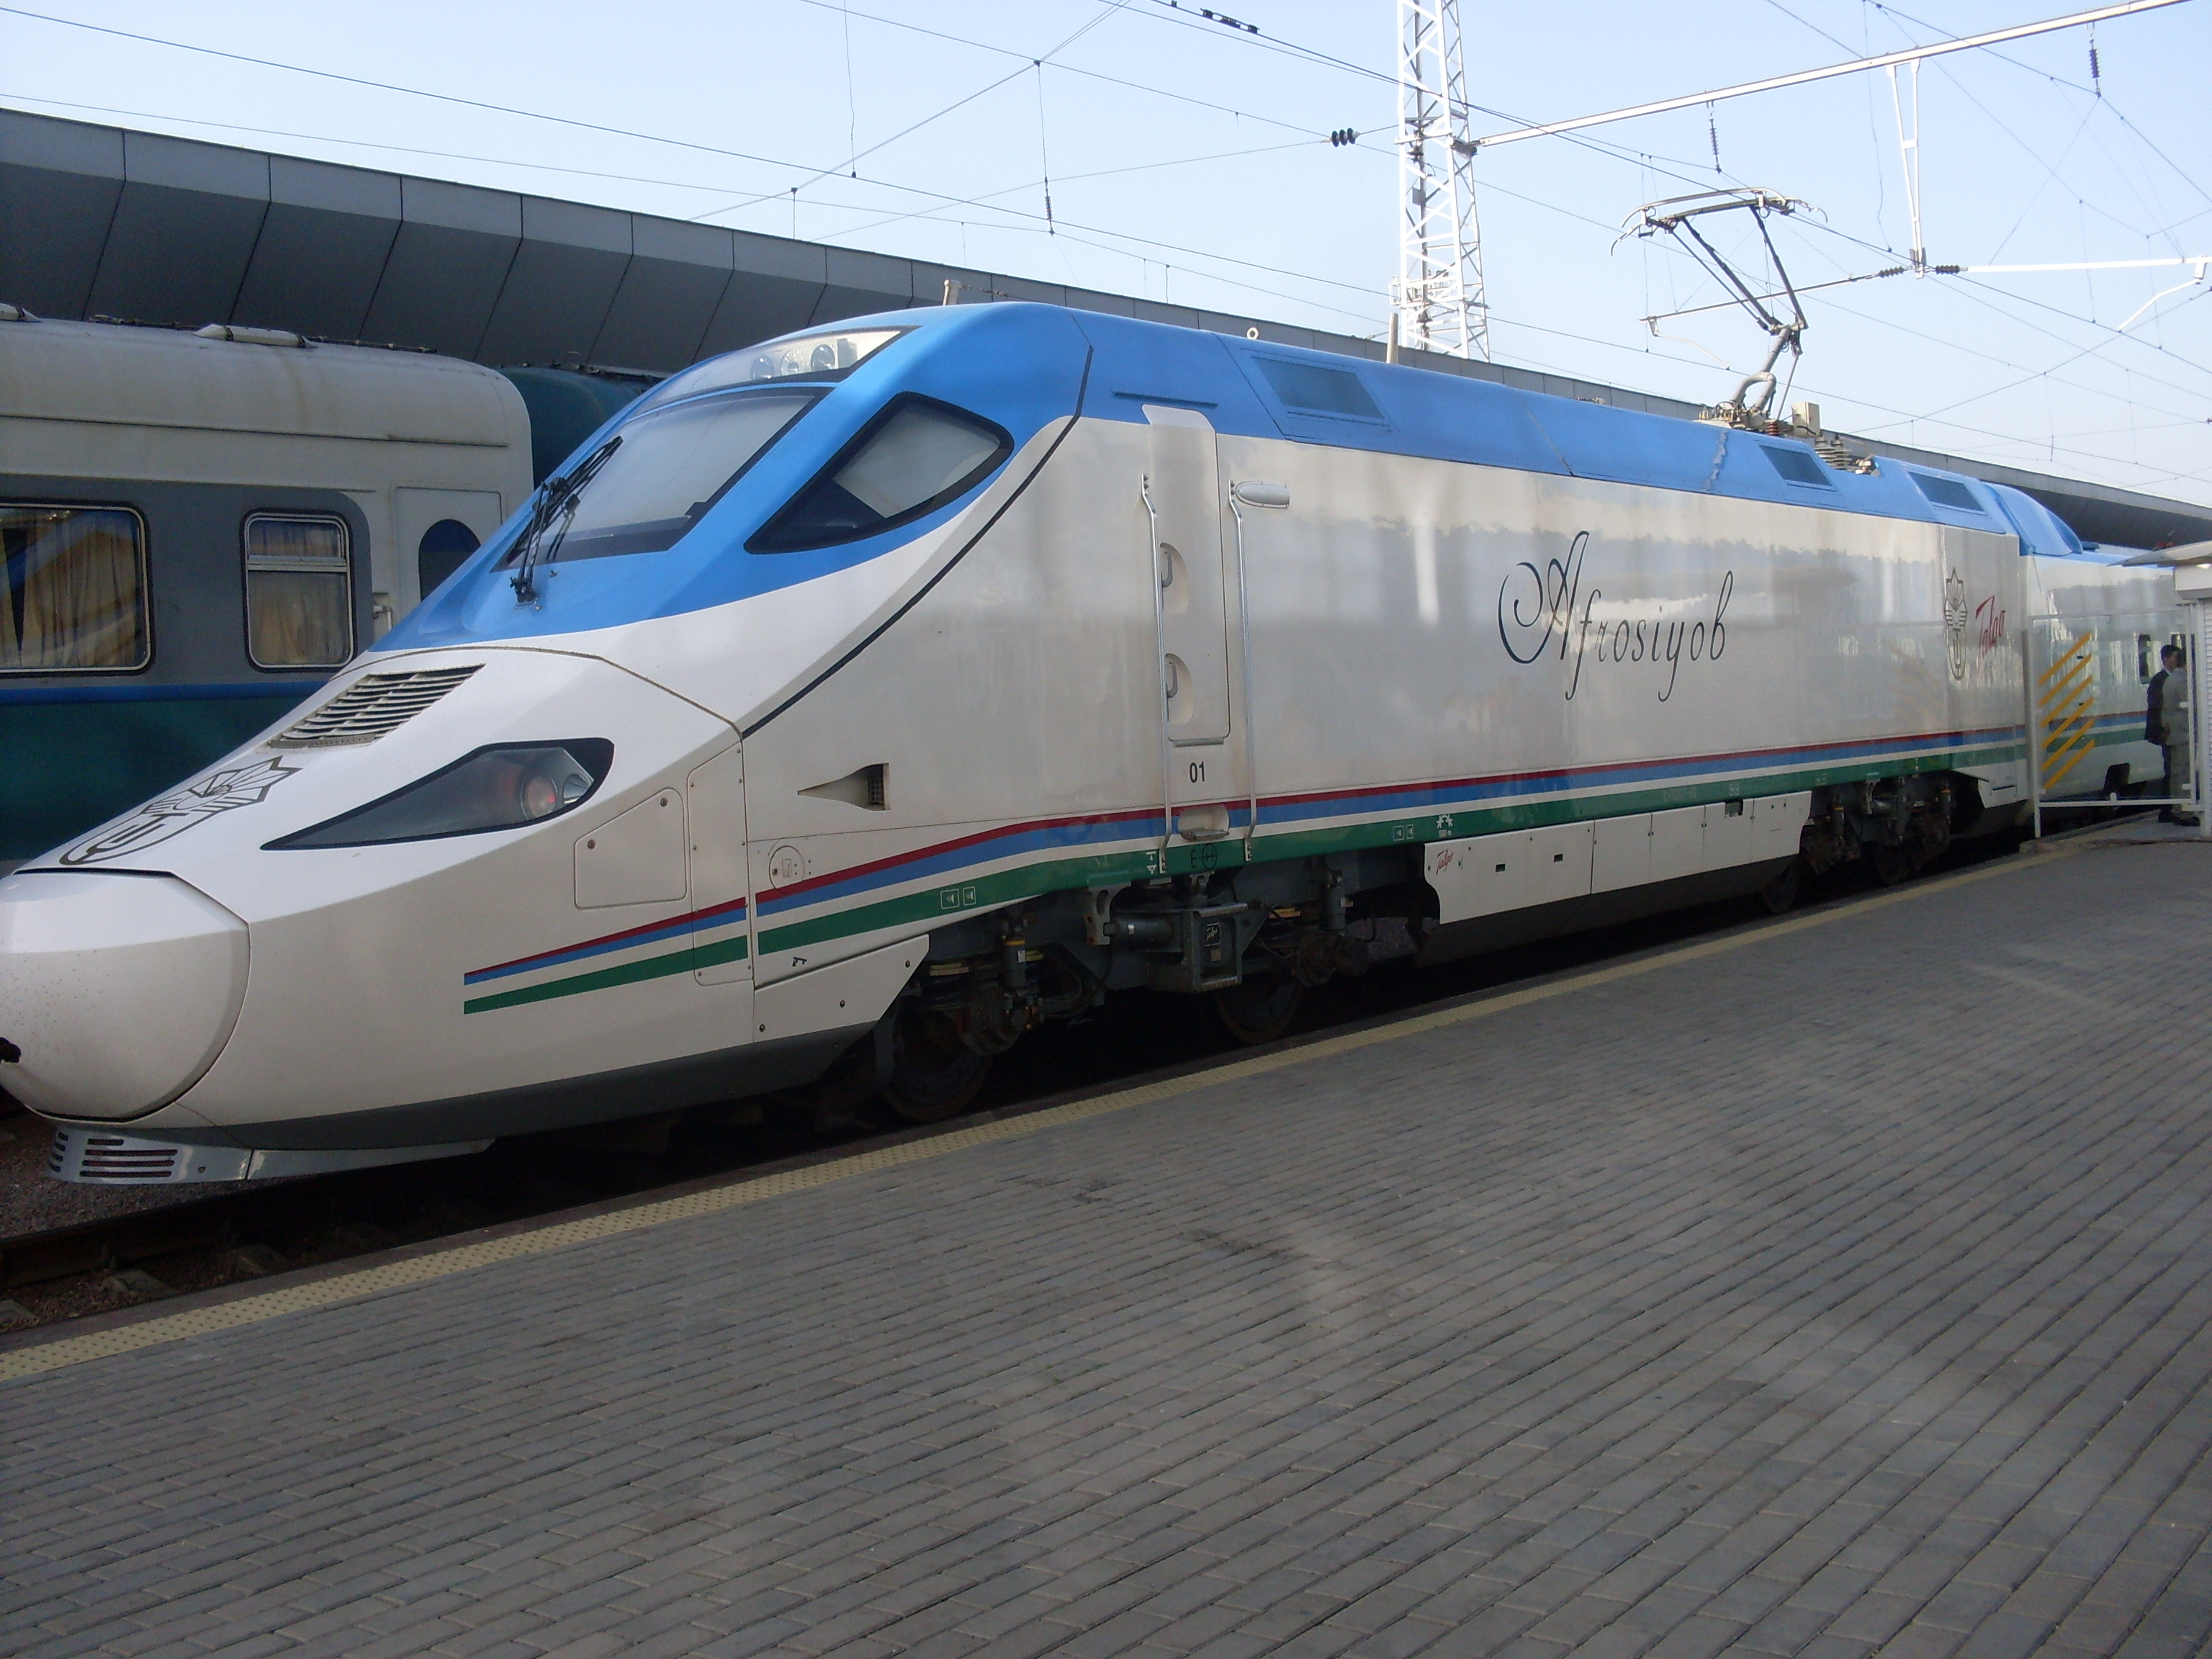 high speed rail 2 essay An evaluation of the arguments for and against building new high speed rail link look at impact on economy, infrastructure, environment, people living nearby and whether it will reduce inequalities.